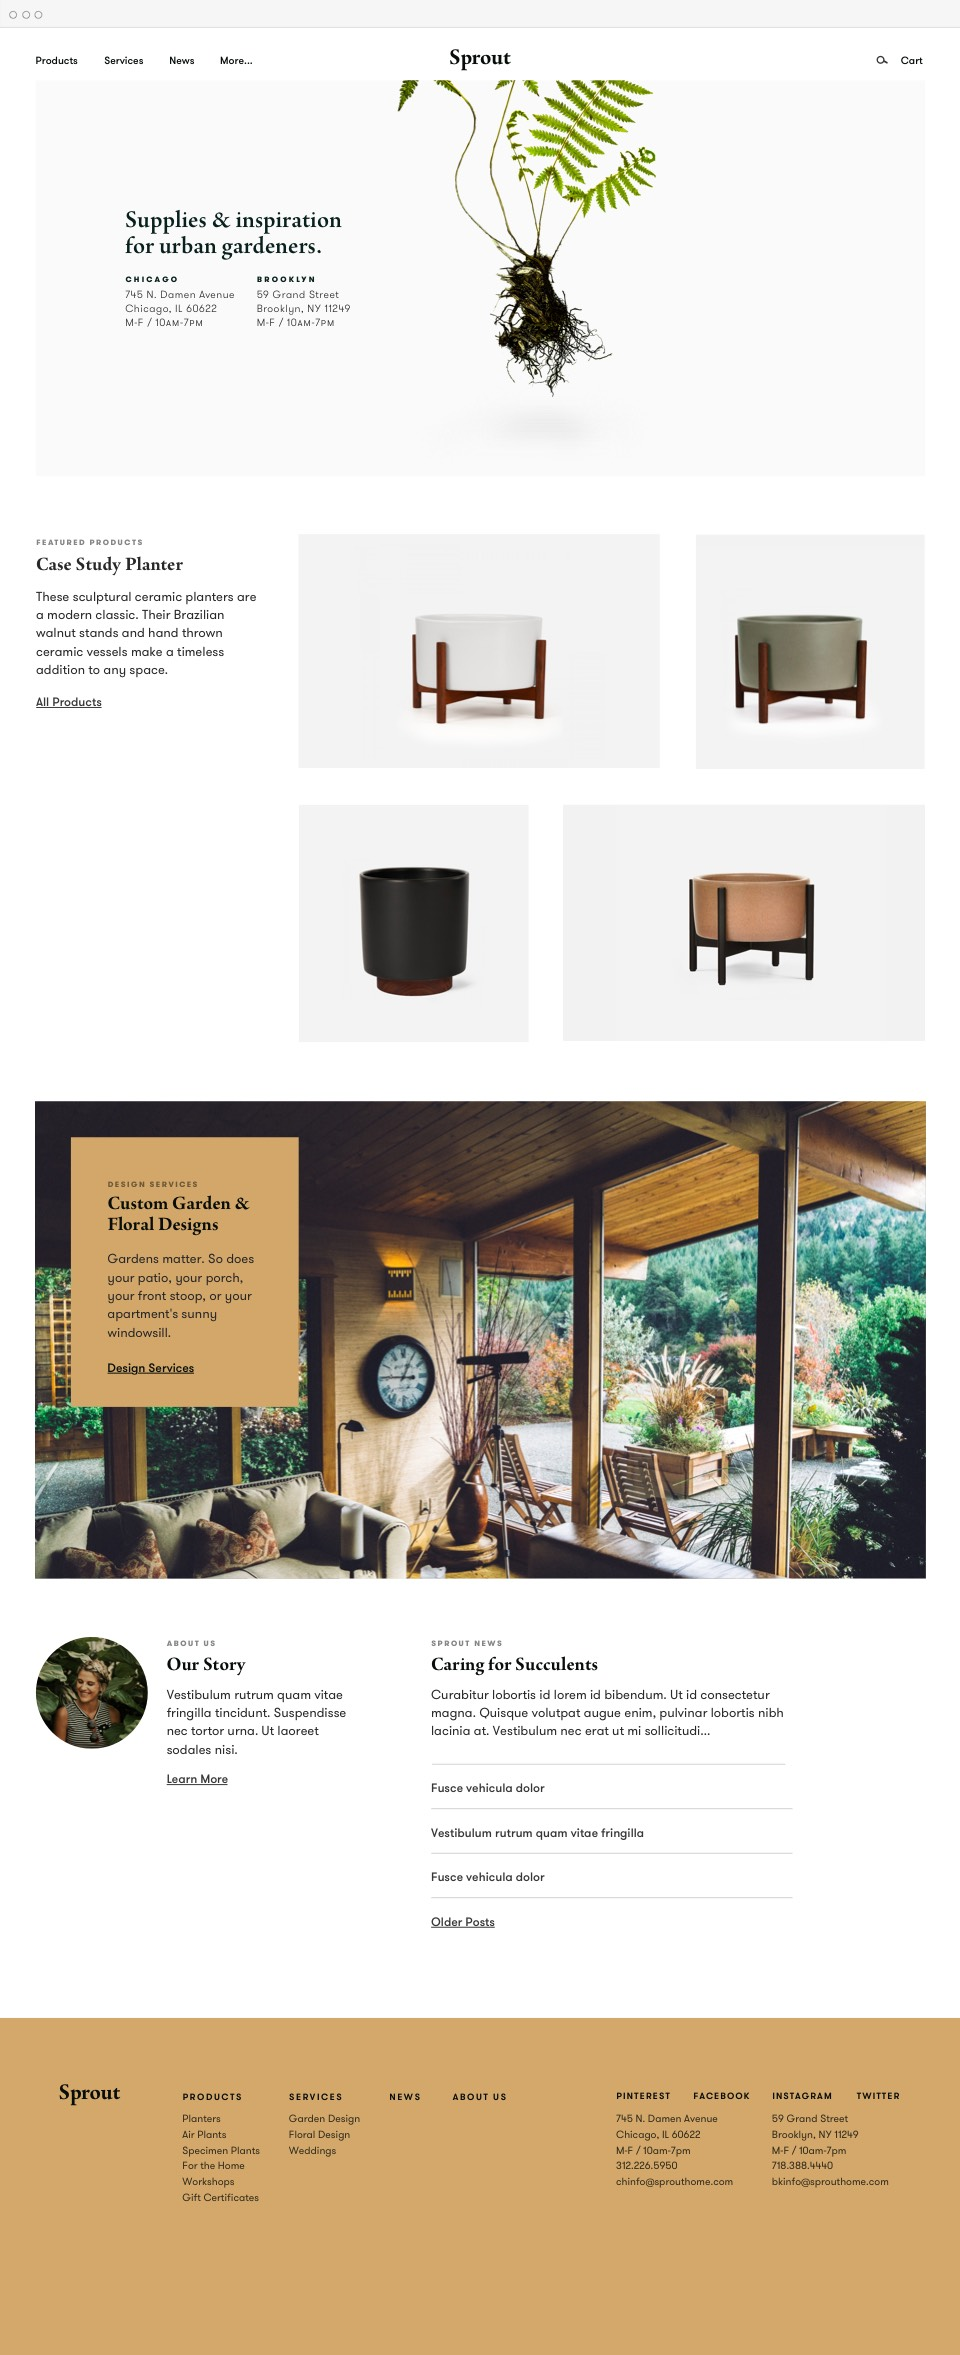 Sprout homepage design